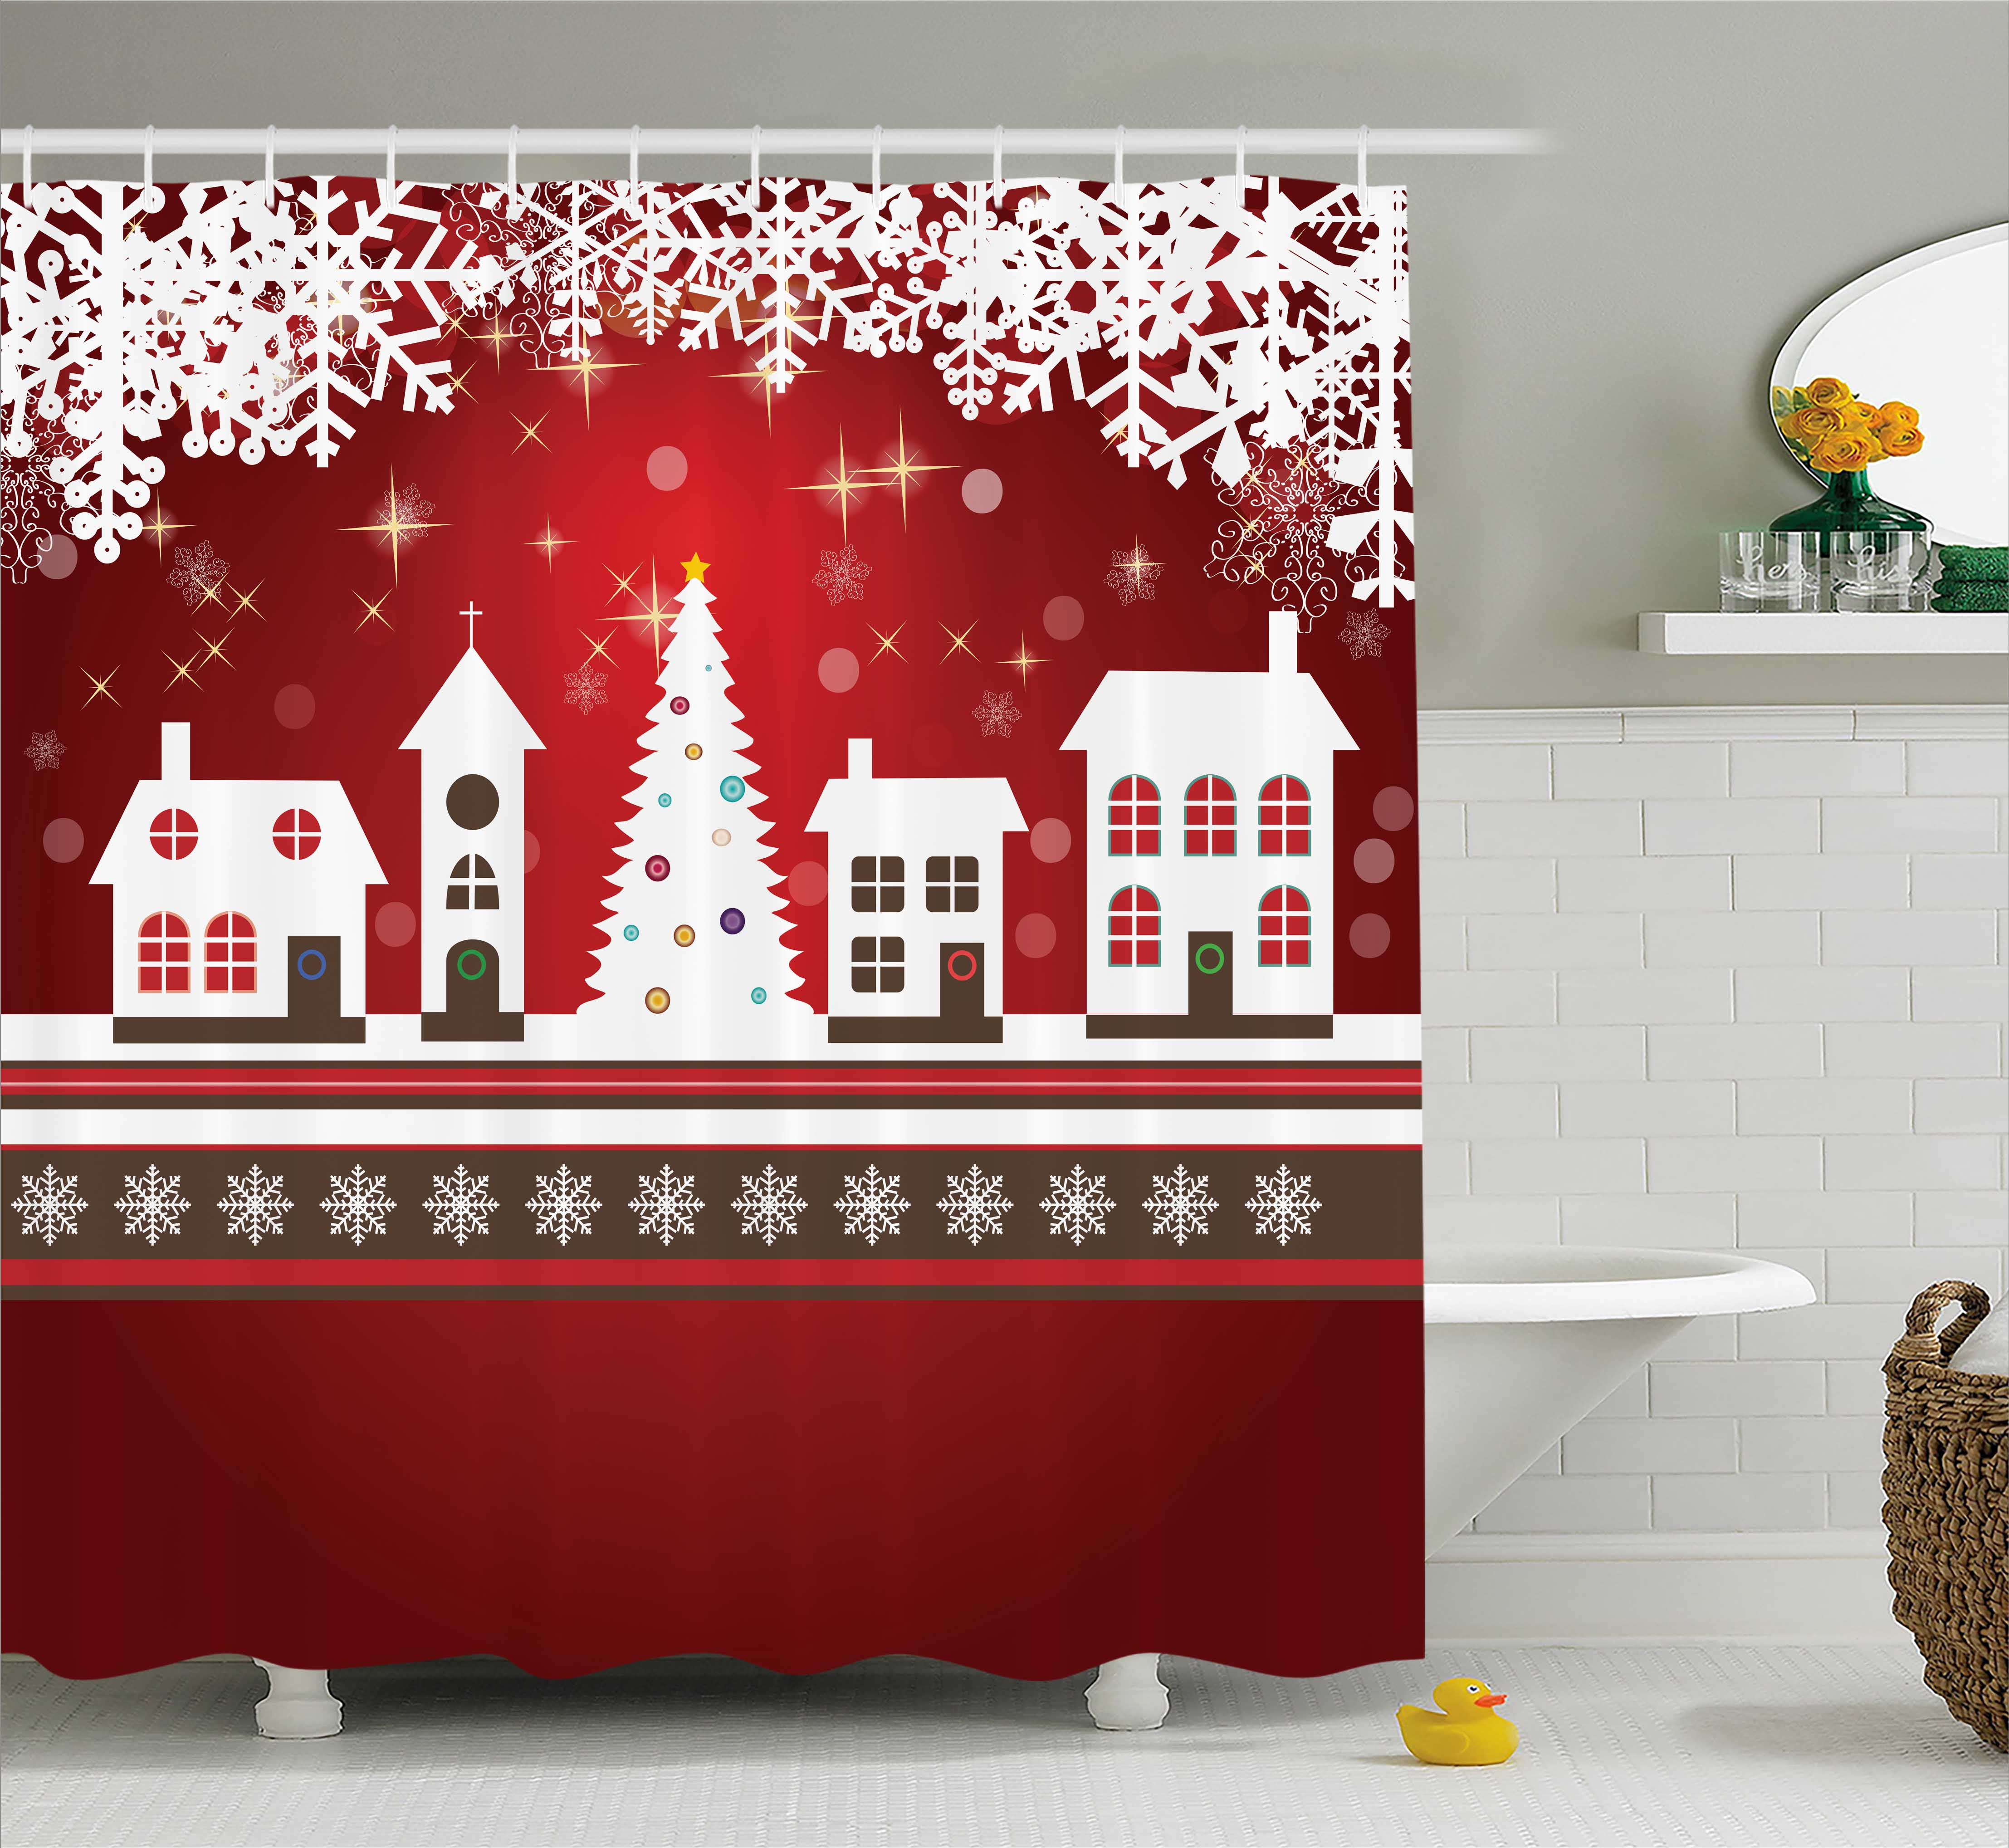 Christmas Decorations Shower Curtain Set, Winter Holidays Themed  Gingerbread Houses Xmas Tree Lights And Snowflakes Image, Bathroom  Accessories, Red White, ...